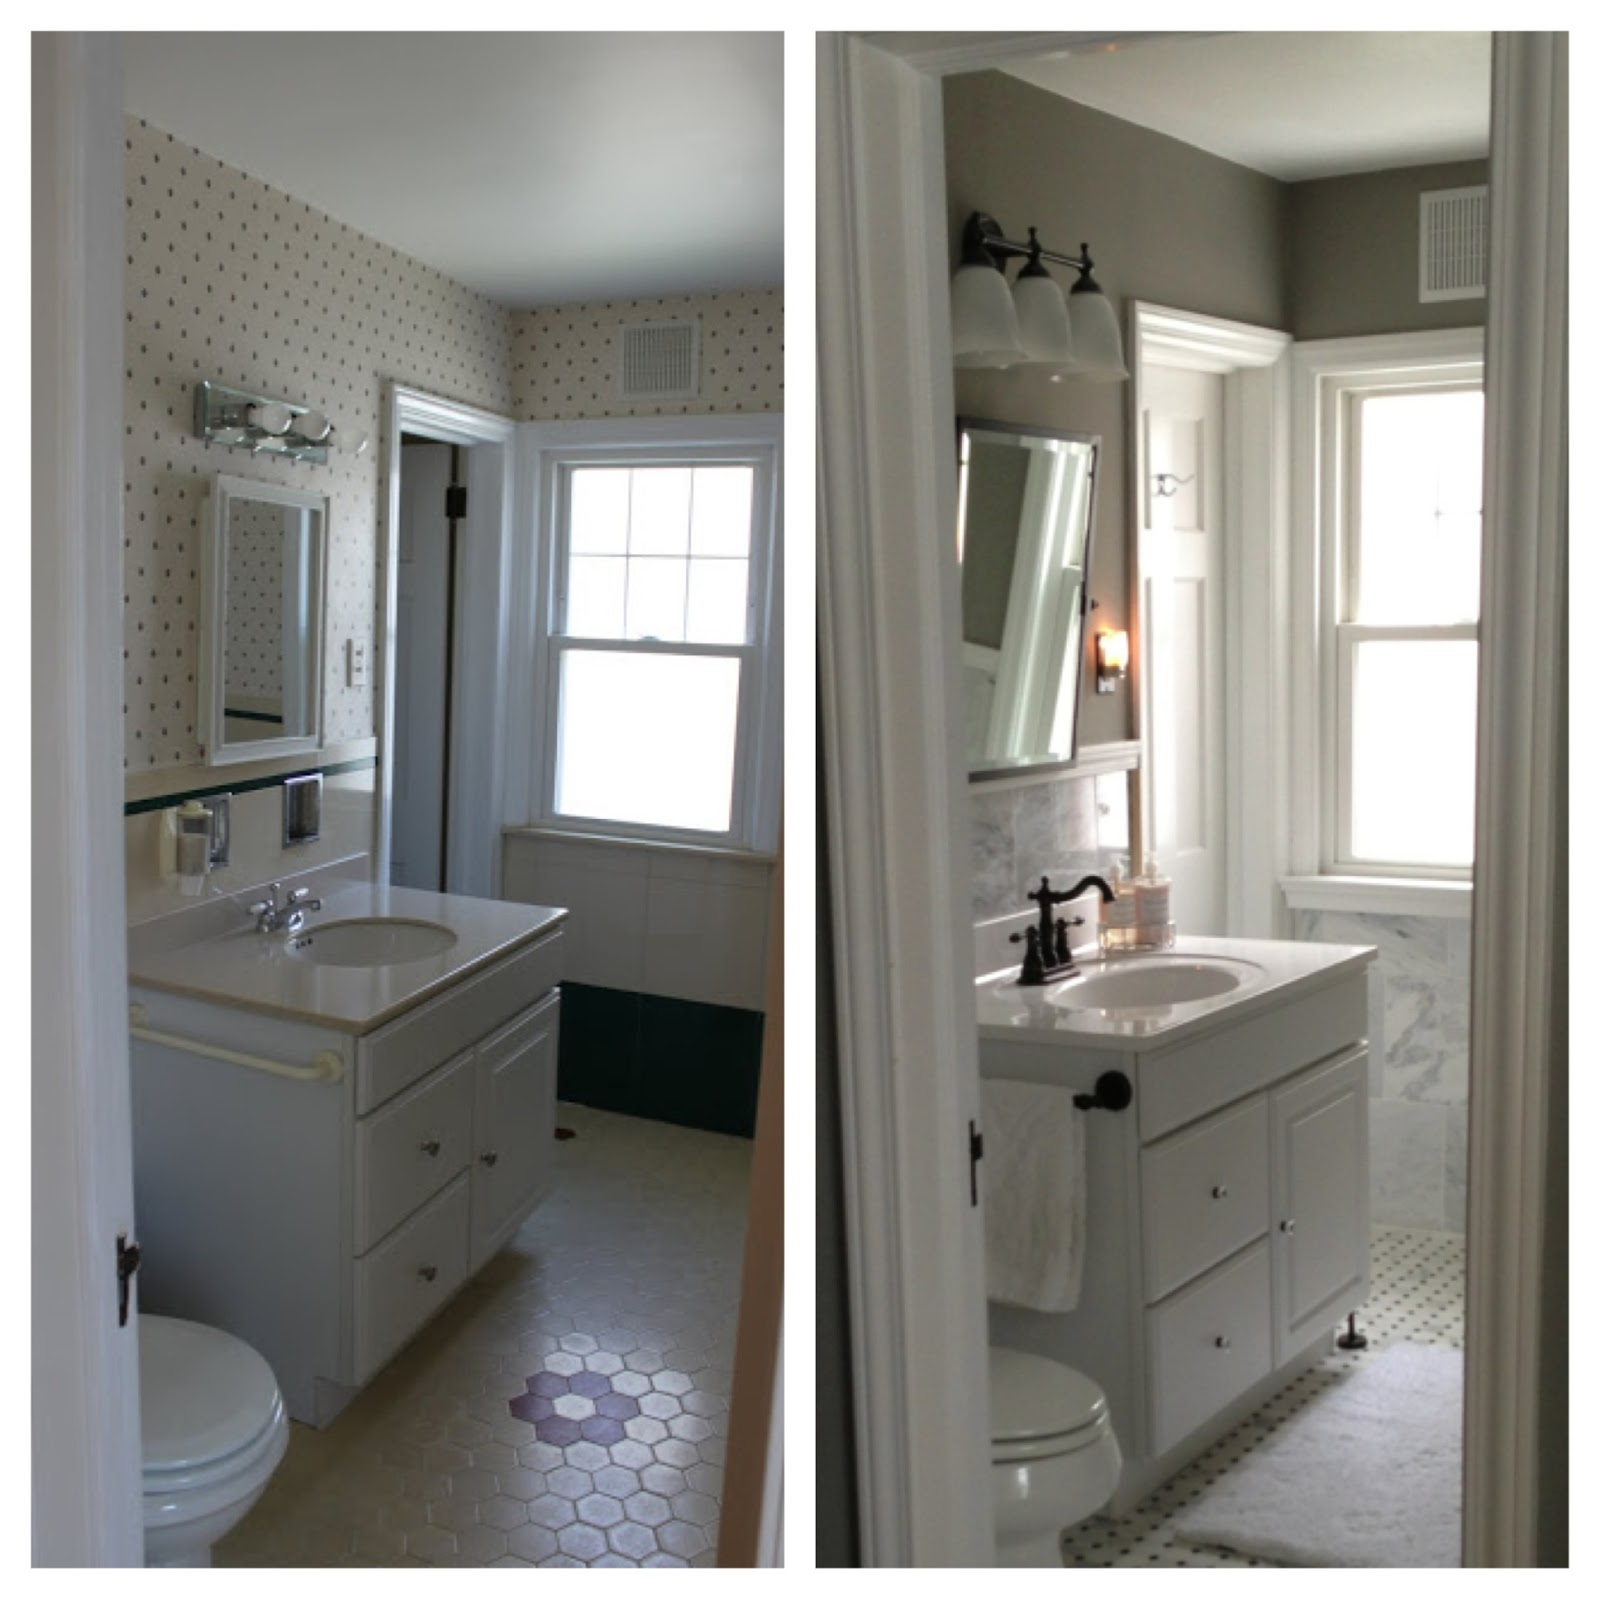 Have a fully functional bathroom here is a quick before and after shot